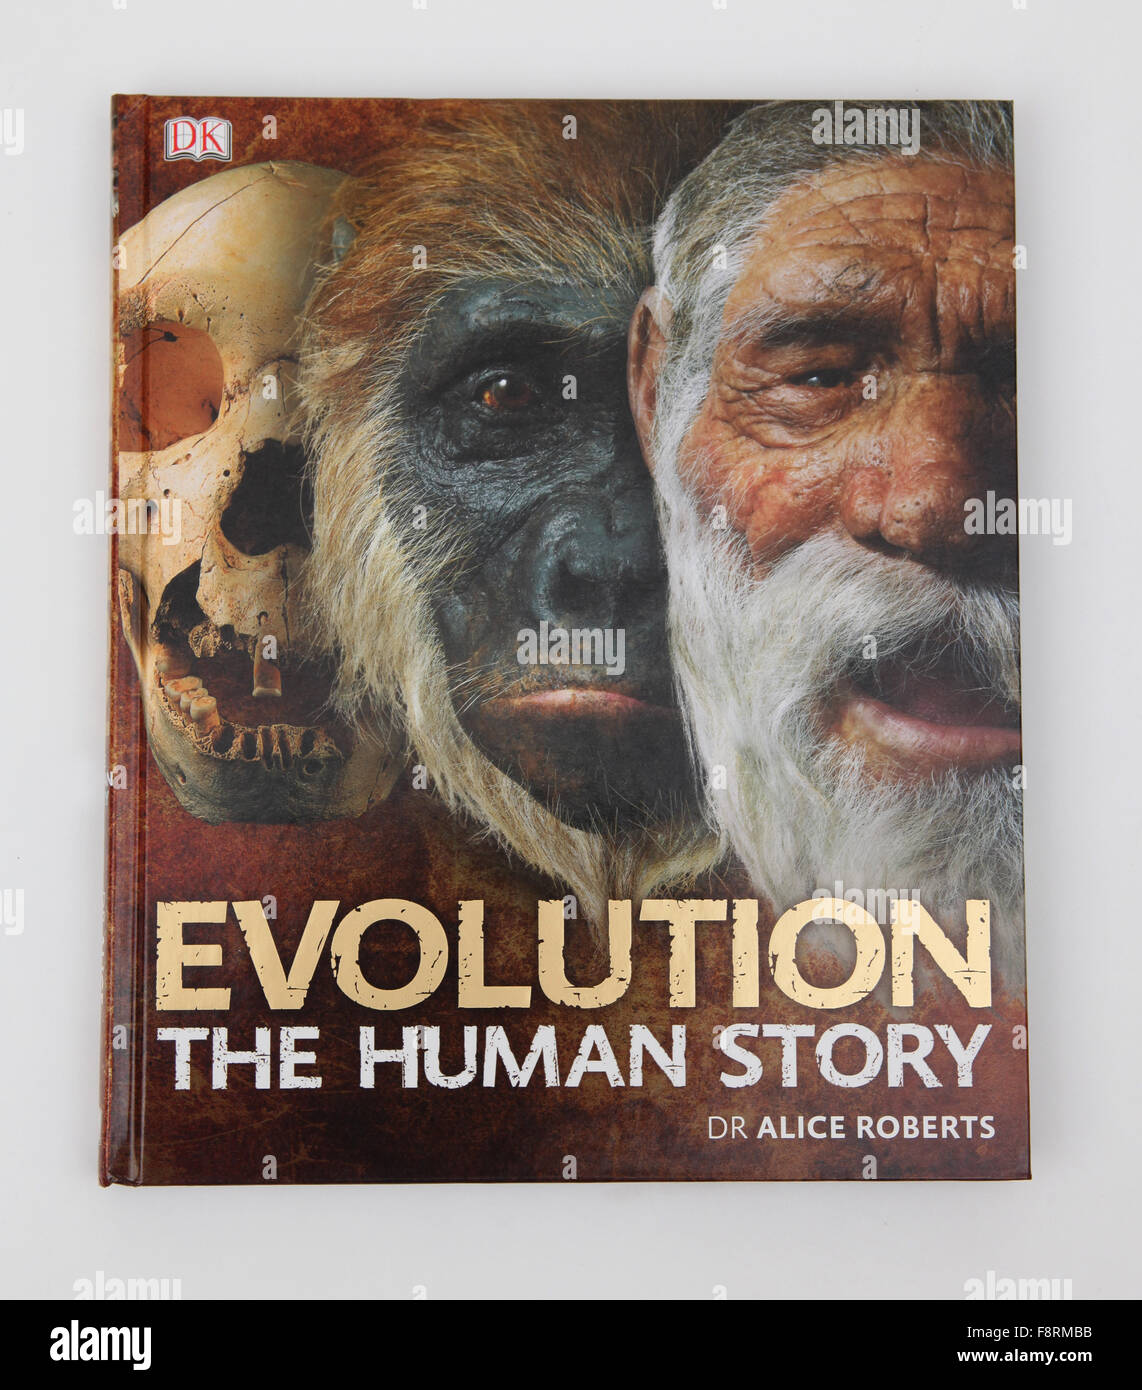 The book - Evolution The Human Story, by Dr Alice Roberts - Stock Image